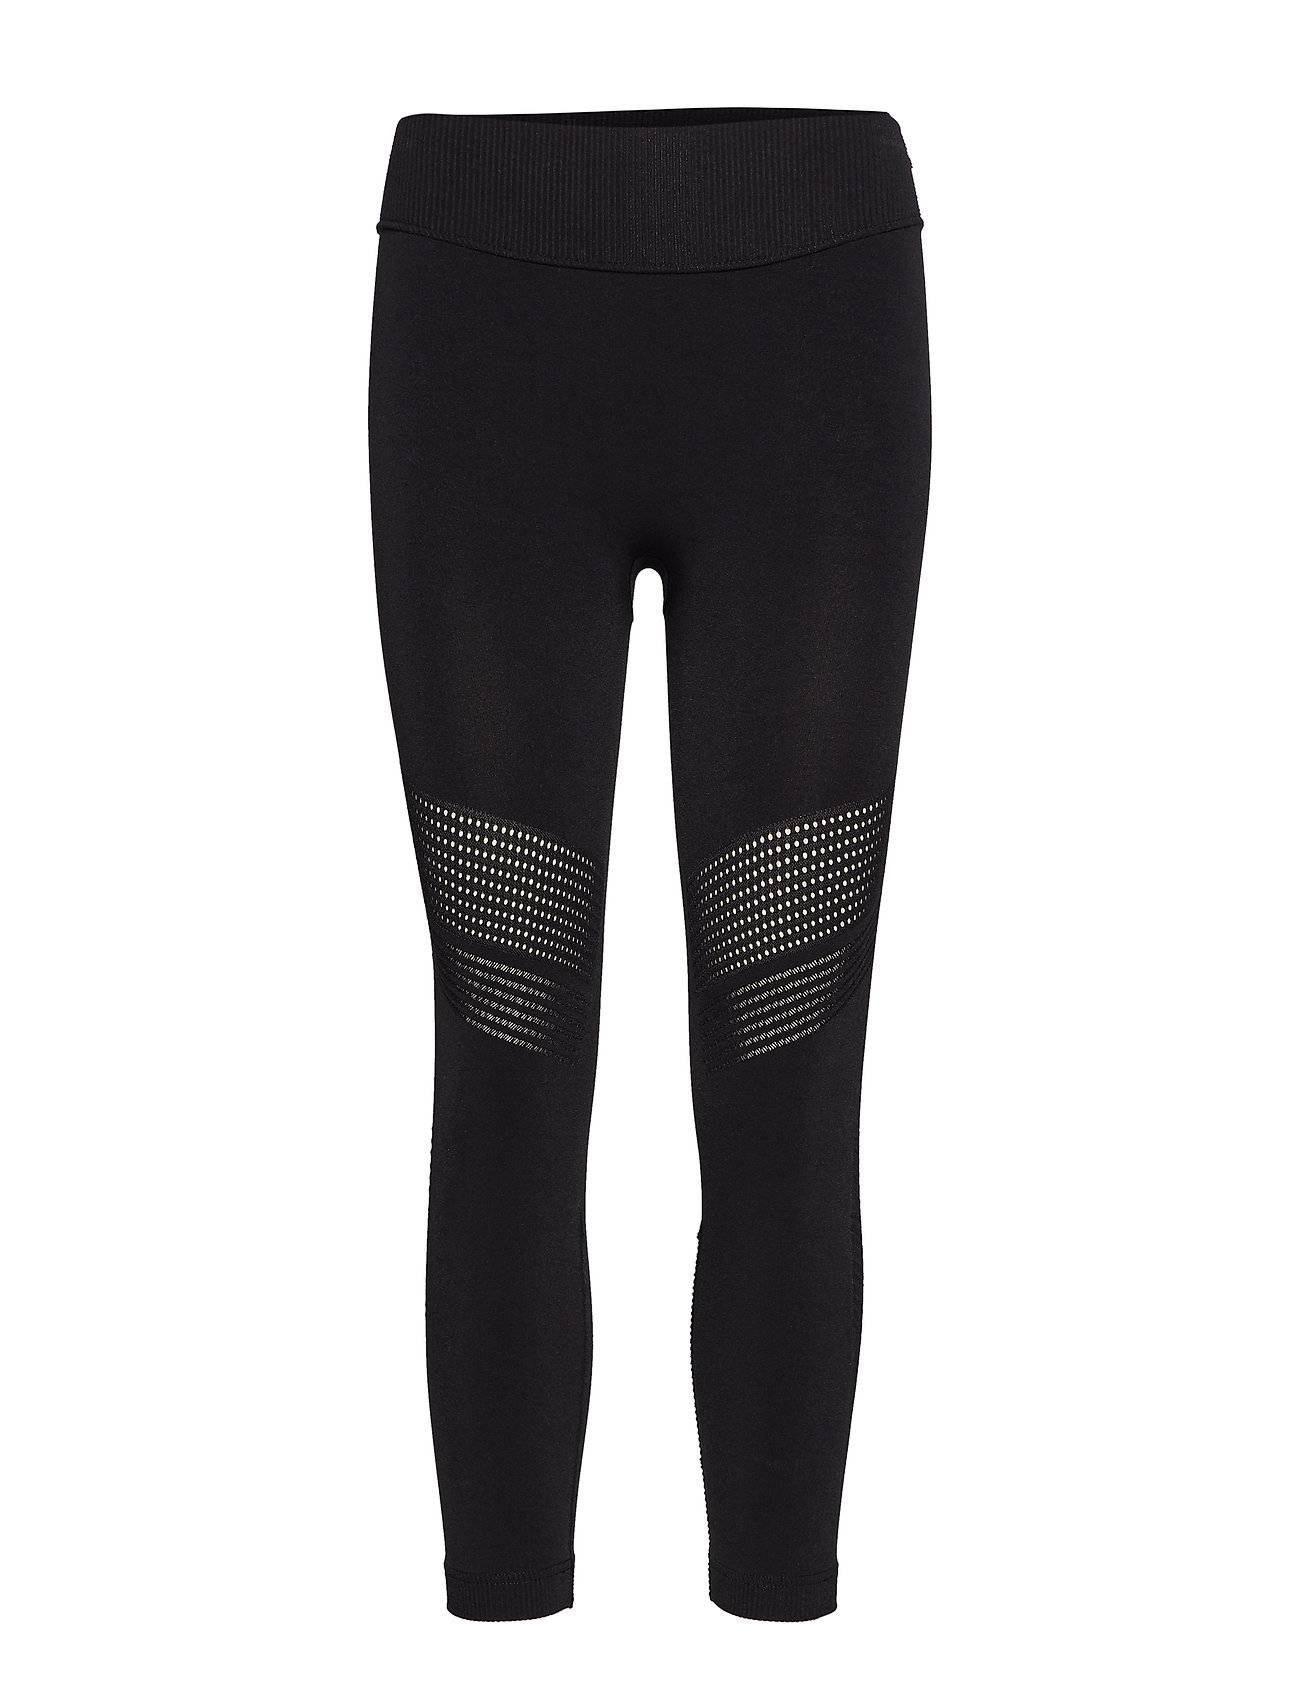 Image of Skins Dnamic Seamless Square Womens 7/8 Tights Running/training Tights Musta